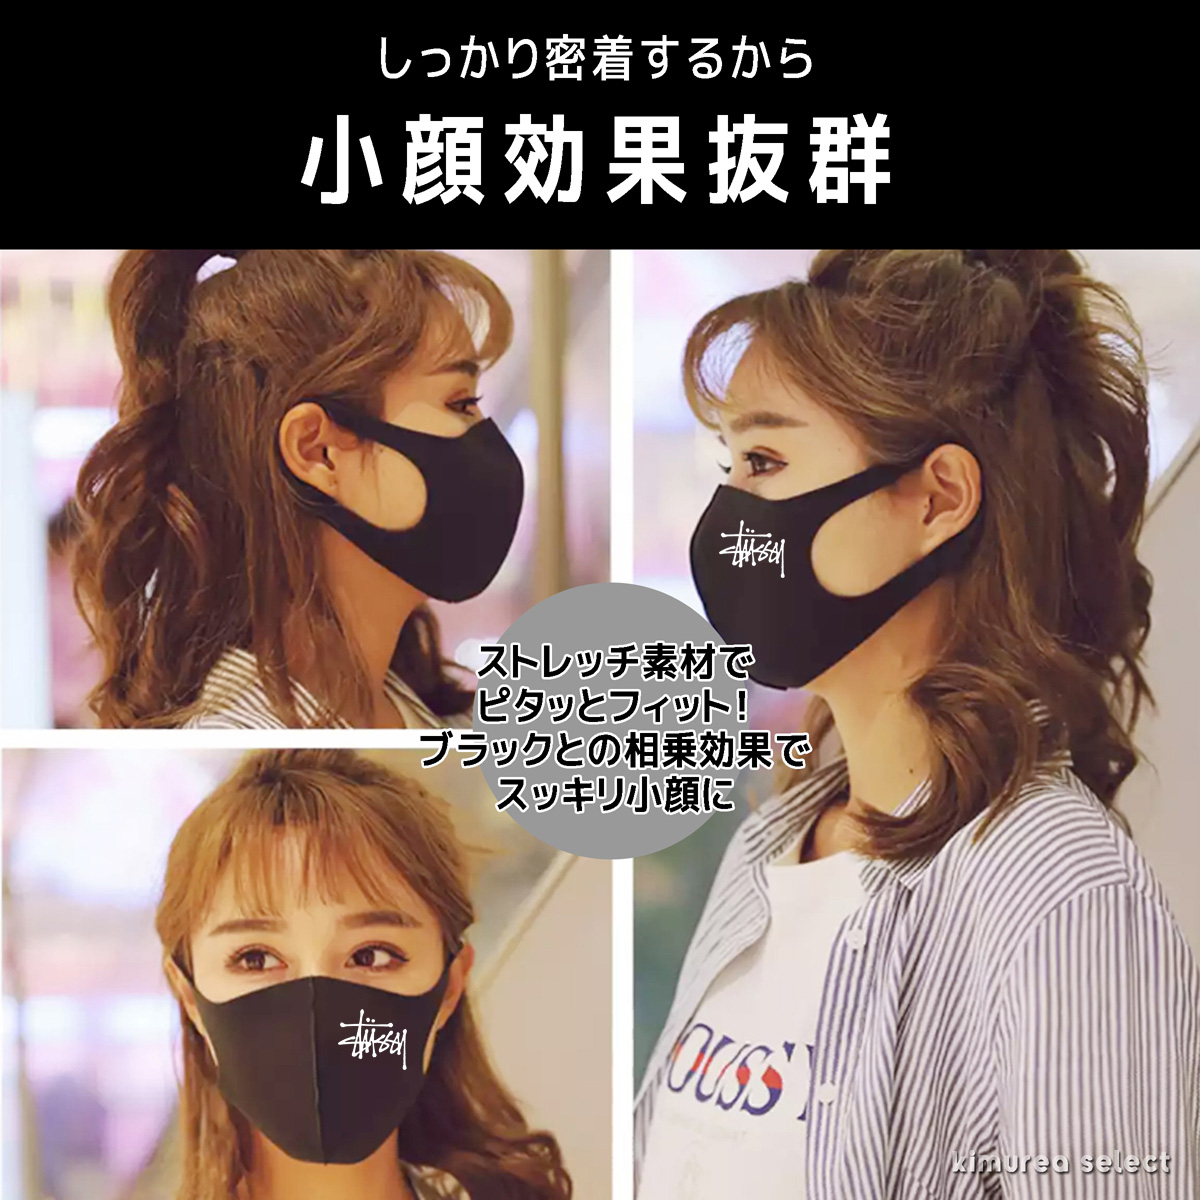 Stussy Cloth Face Mask Covid-19 Breathable Anti-pollution Cotton 3D Reusable Masks Adjustable Washable Covering